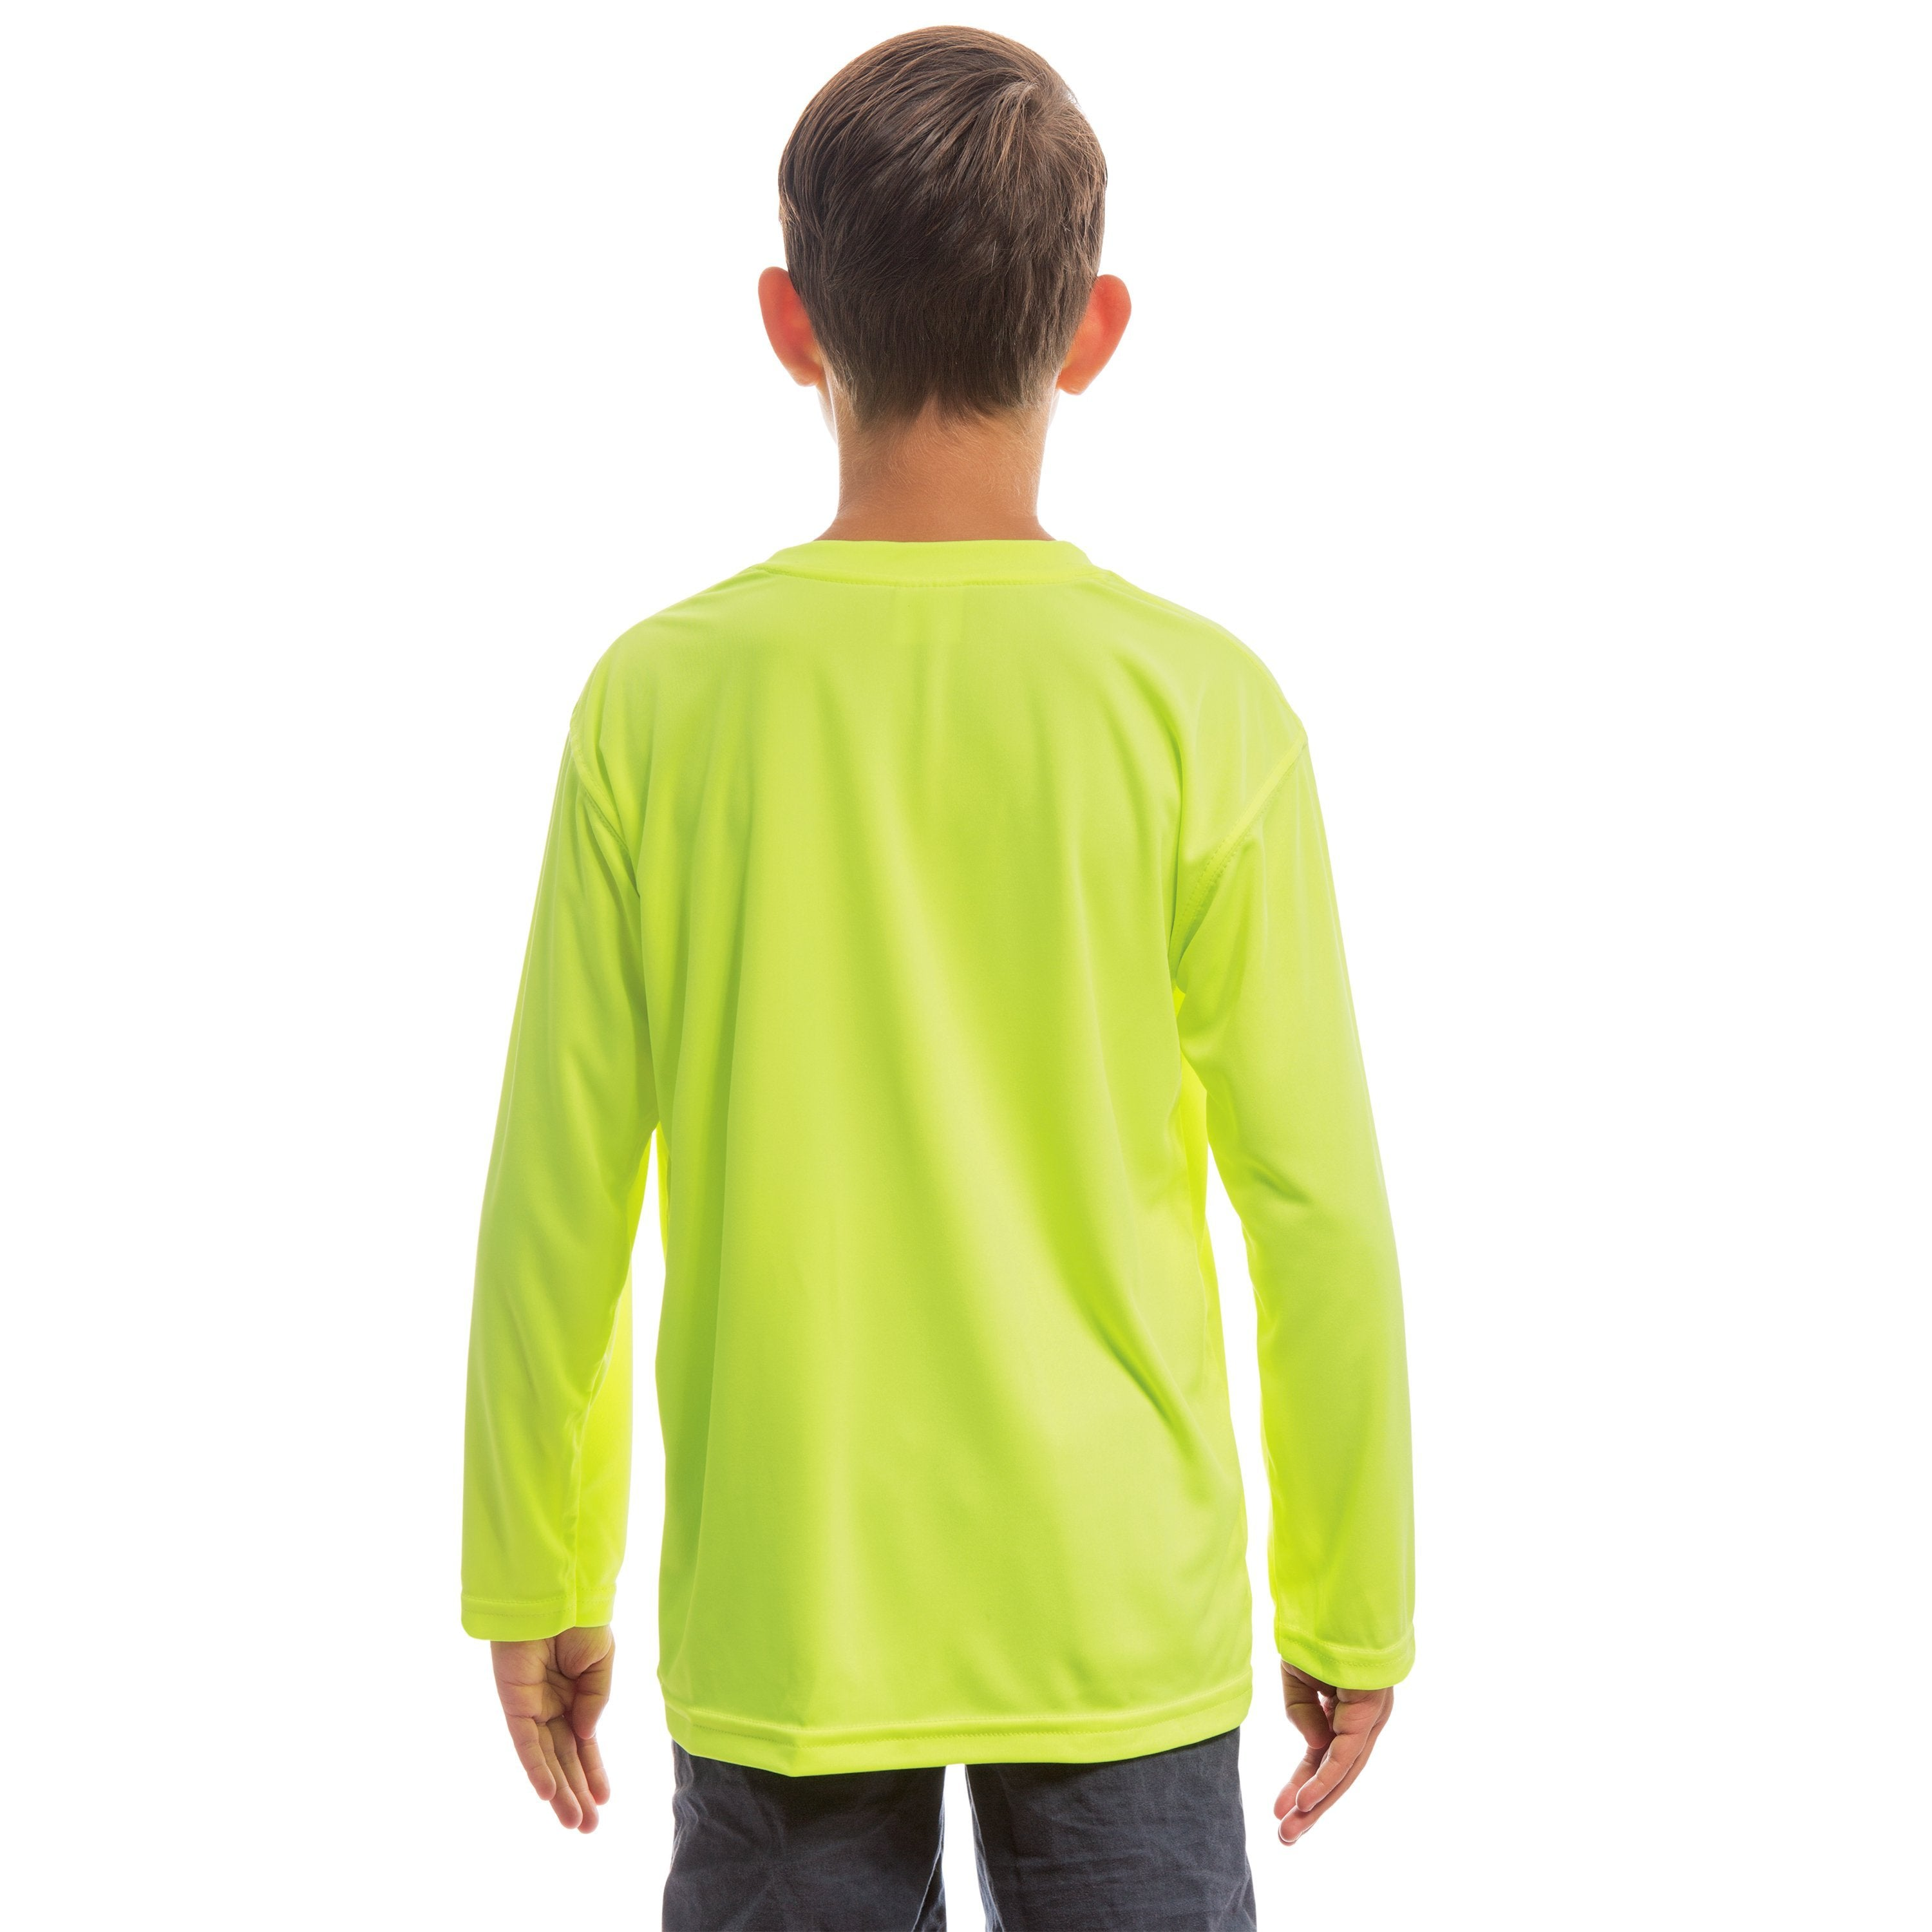 M780SY Youth Solar Long Sleeve - Safety Yellow